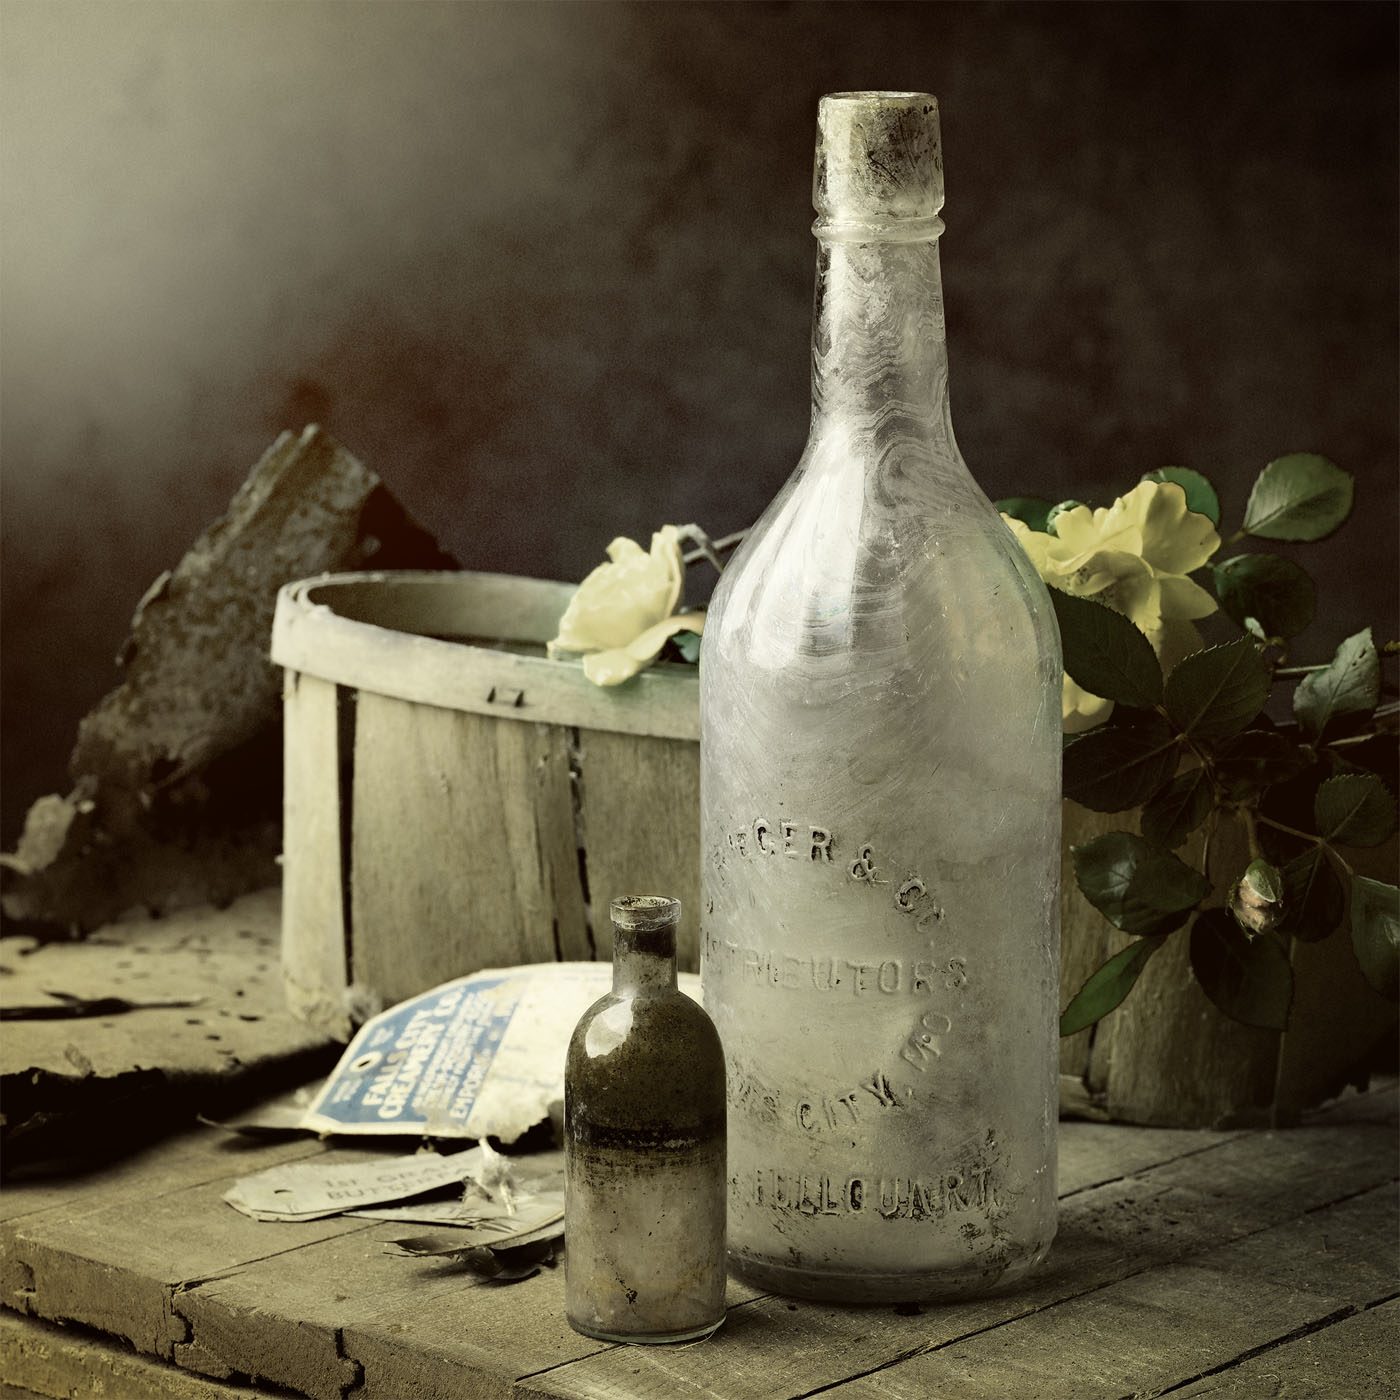 Crawlspace Trash – Bottles and Yellow Roses